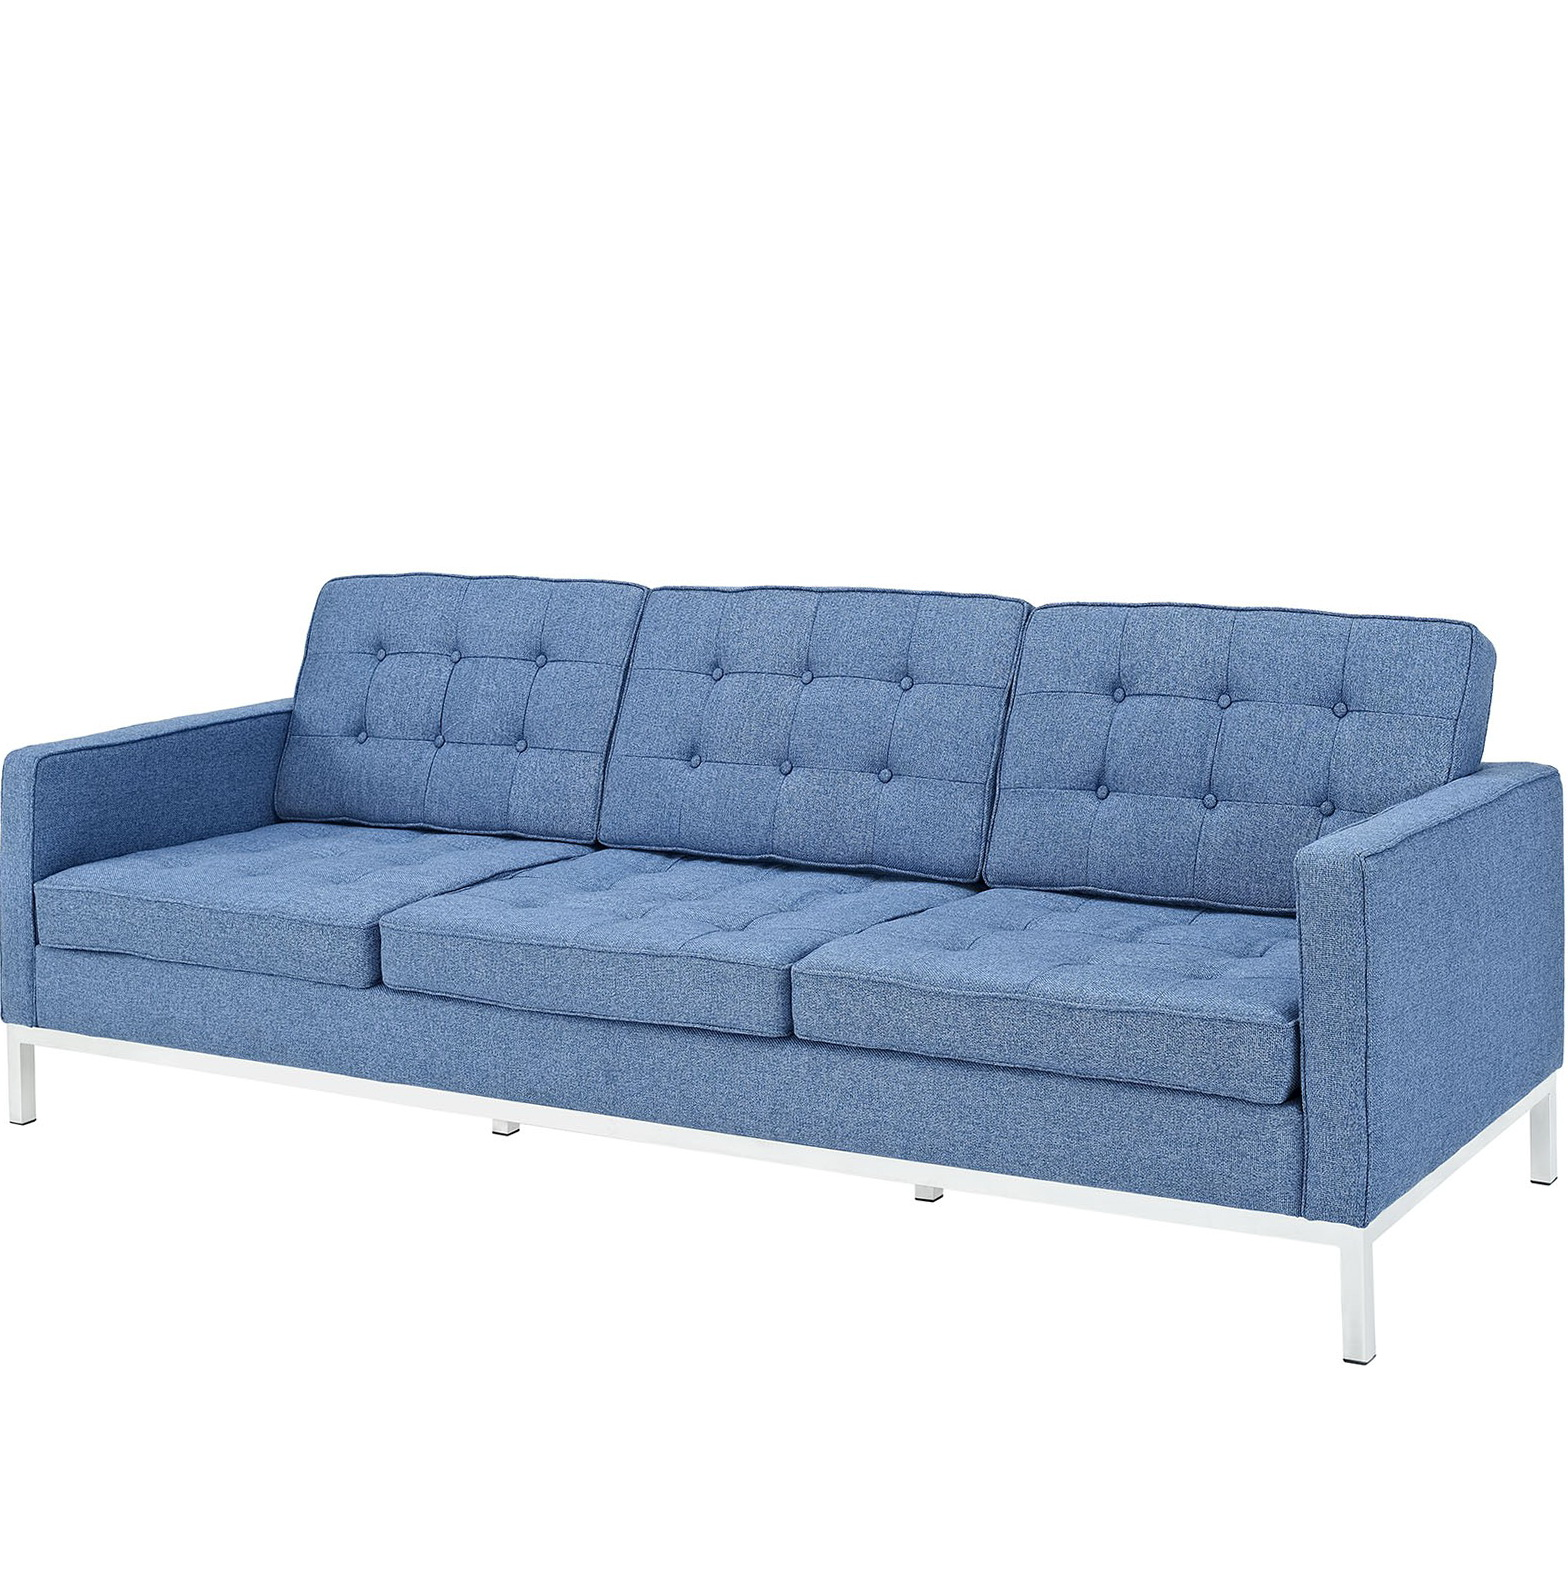 Florence Knoll Sofa Reproduction